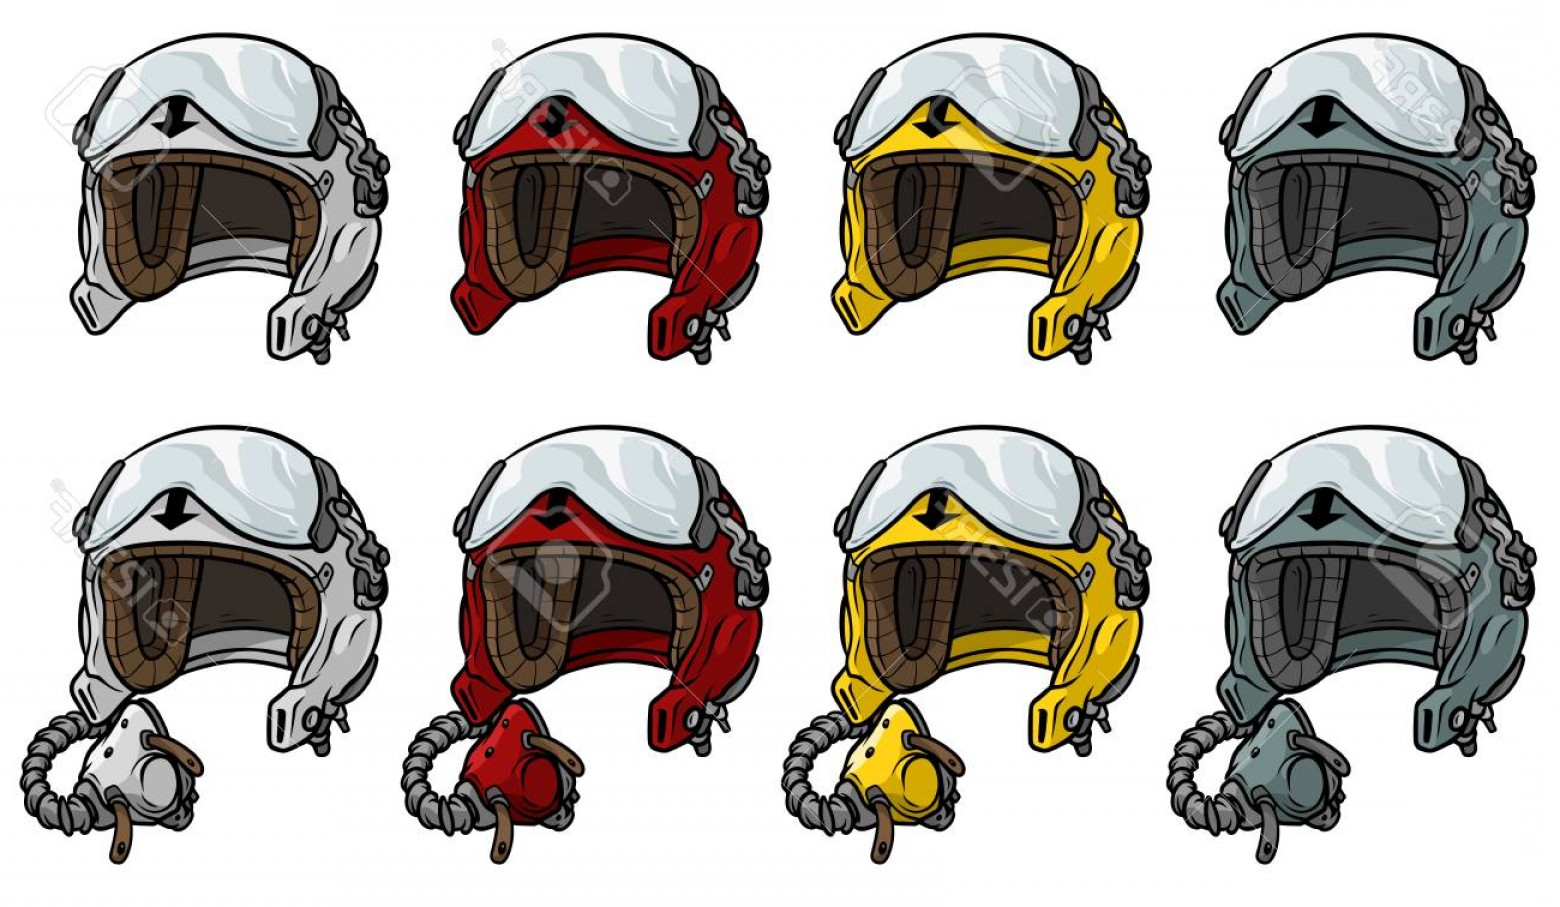 Fighter Helmet Vectors: Photostock Vector Cartoon Aviator Pilot Helmet Vector Icon Set